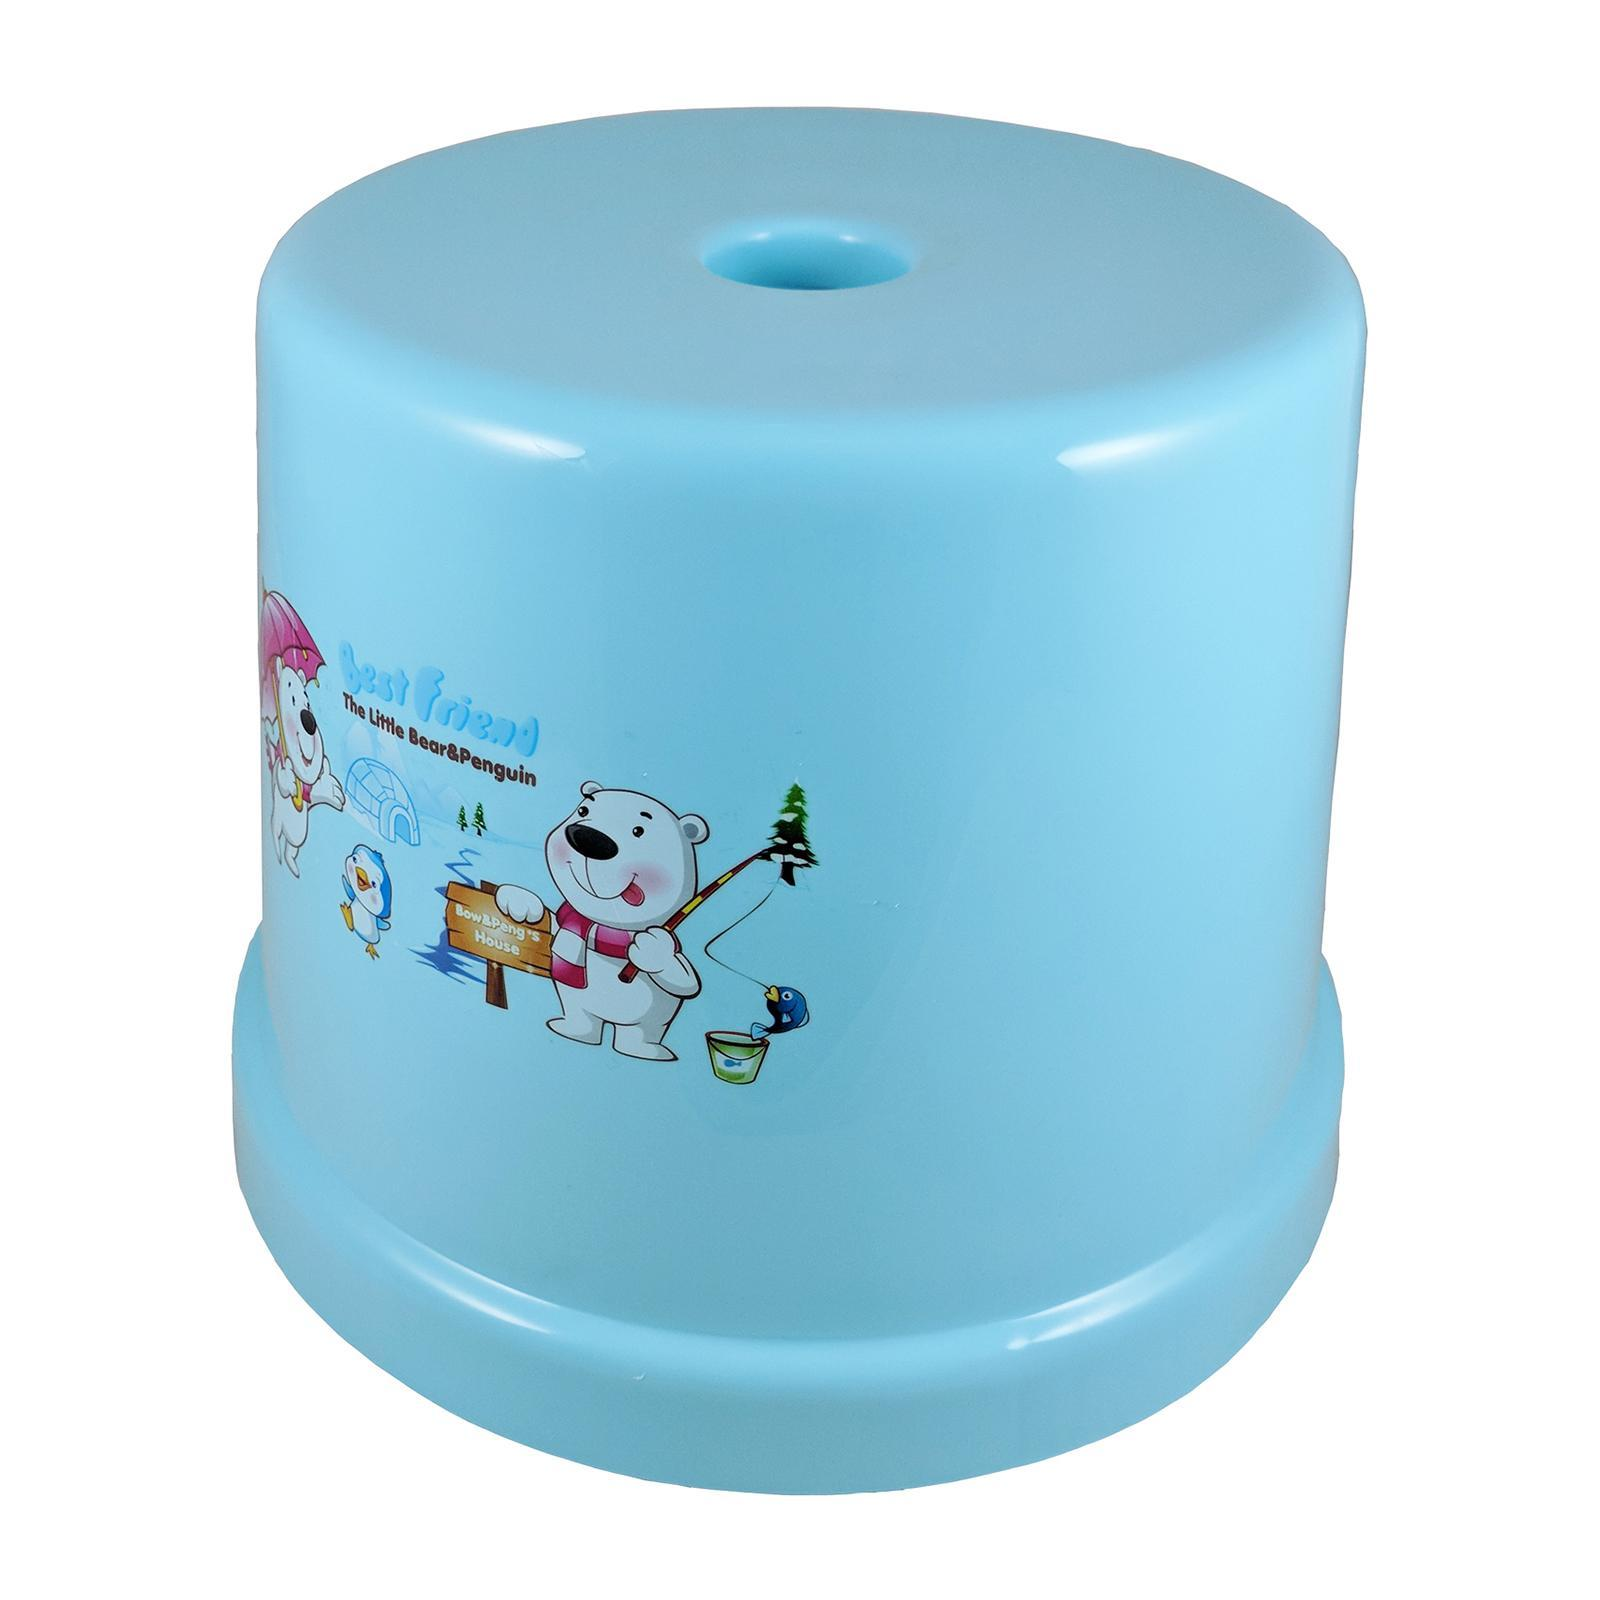 KangjiaBao Winter Time Plastic Round Stool 23 Cm (Blue)